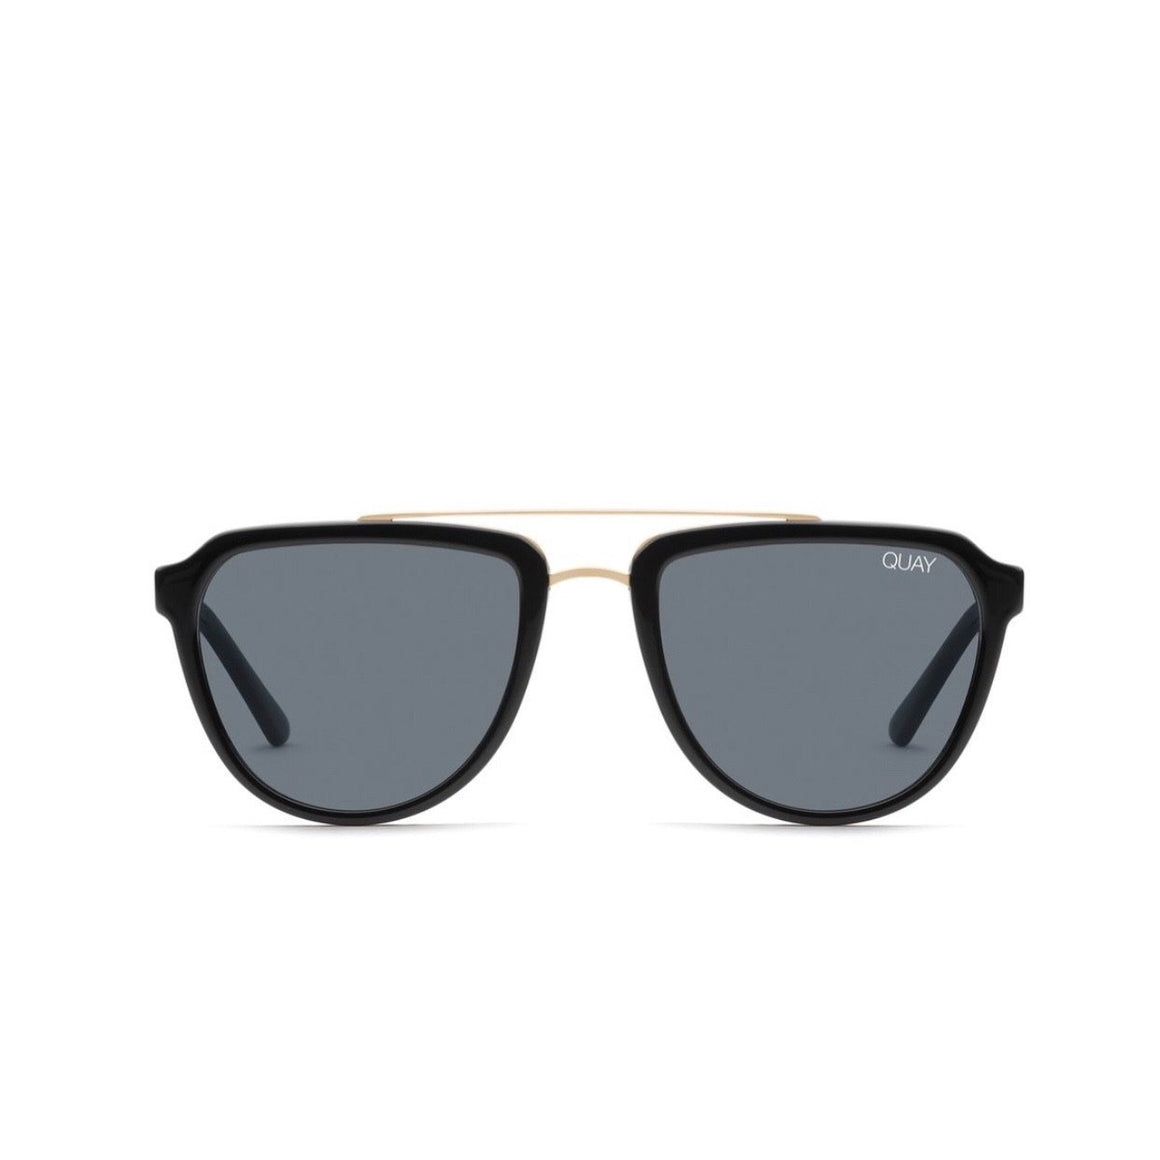 Quay - Mystic Sunglasses - Black / Smoke Sunglasses Quay